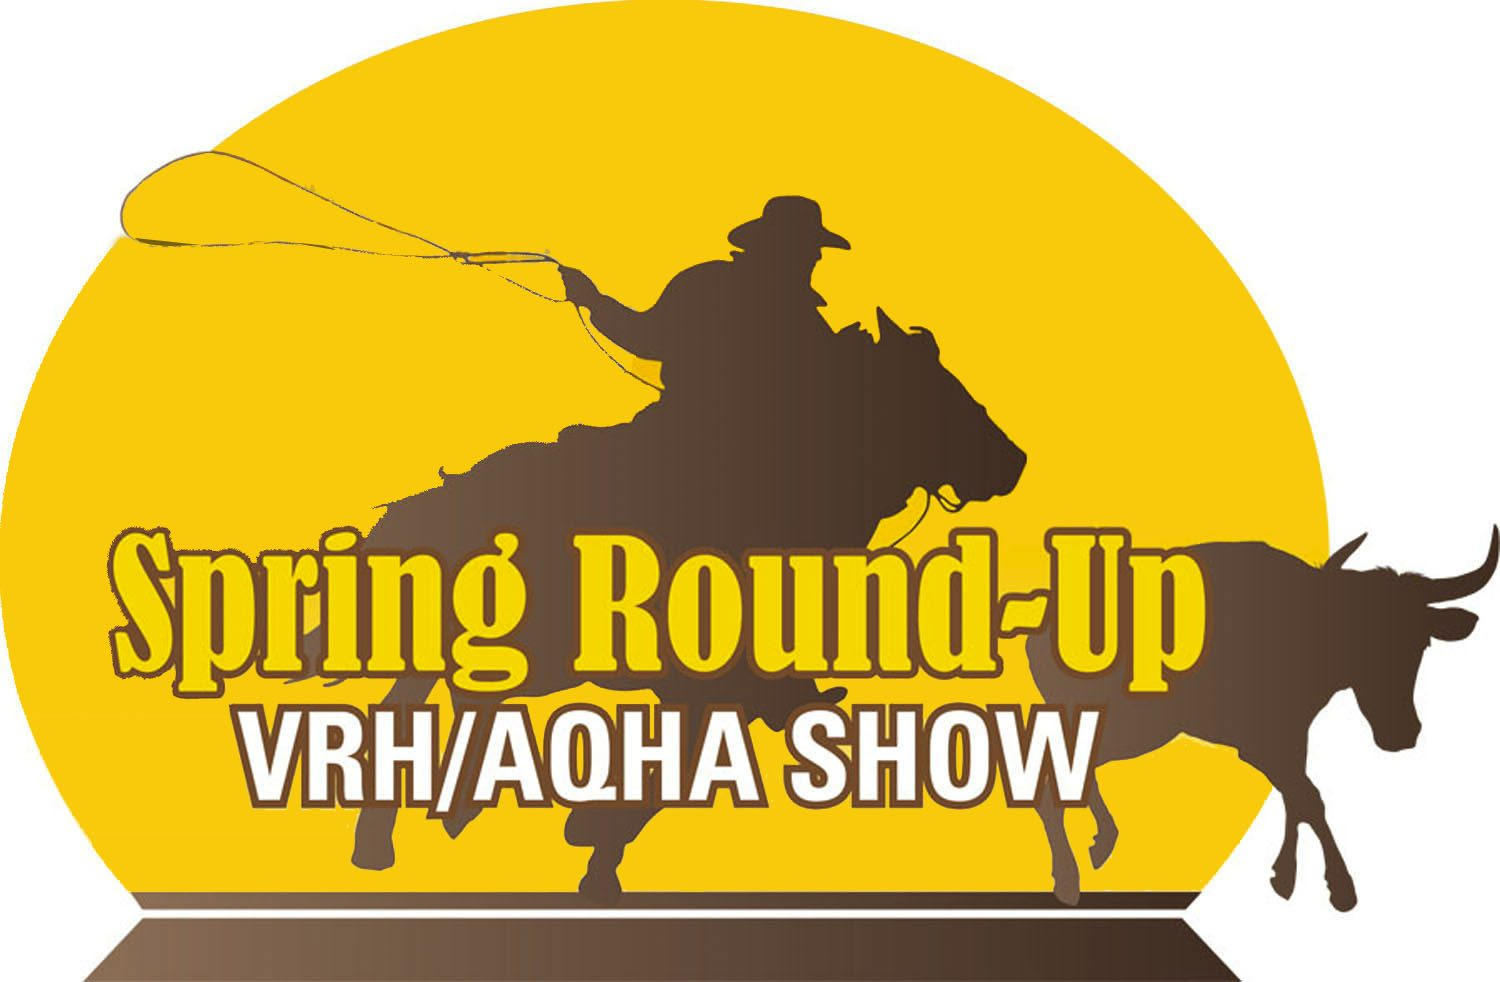 2021 Spring Round-Up VRH/AQHA/APHA/All Breed Ranch Show